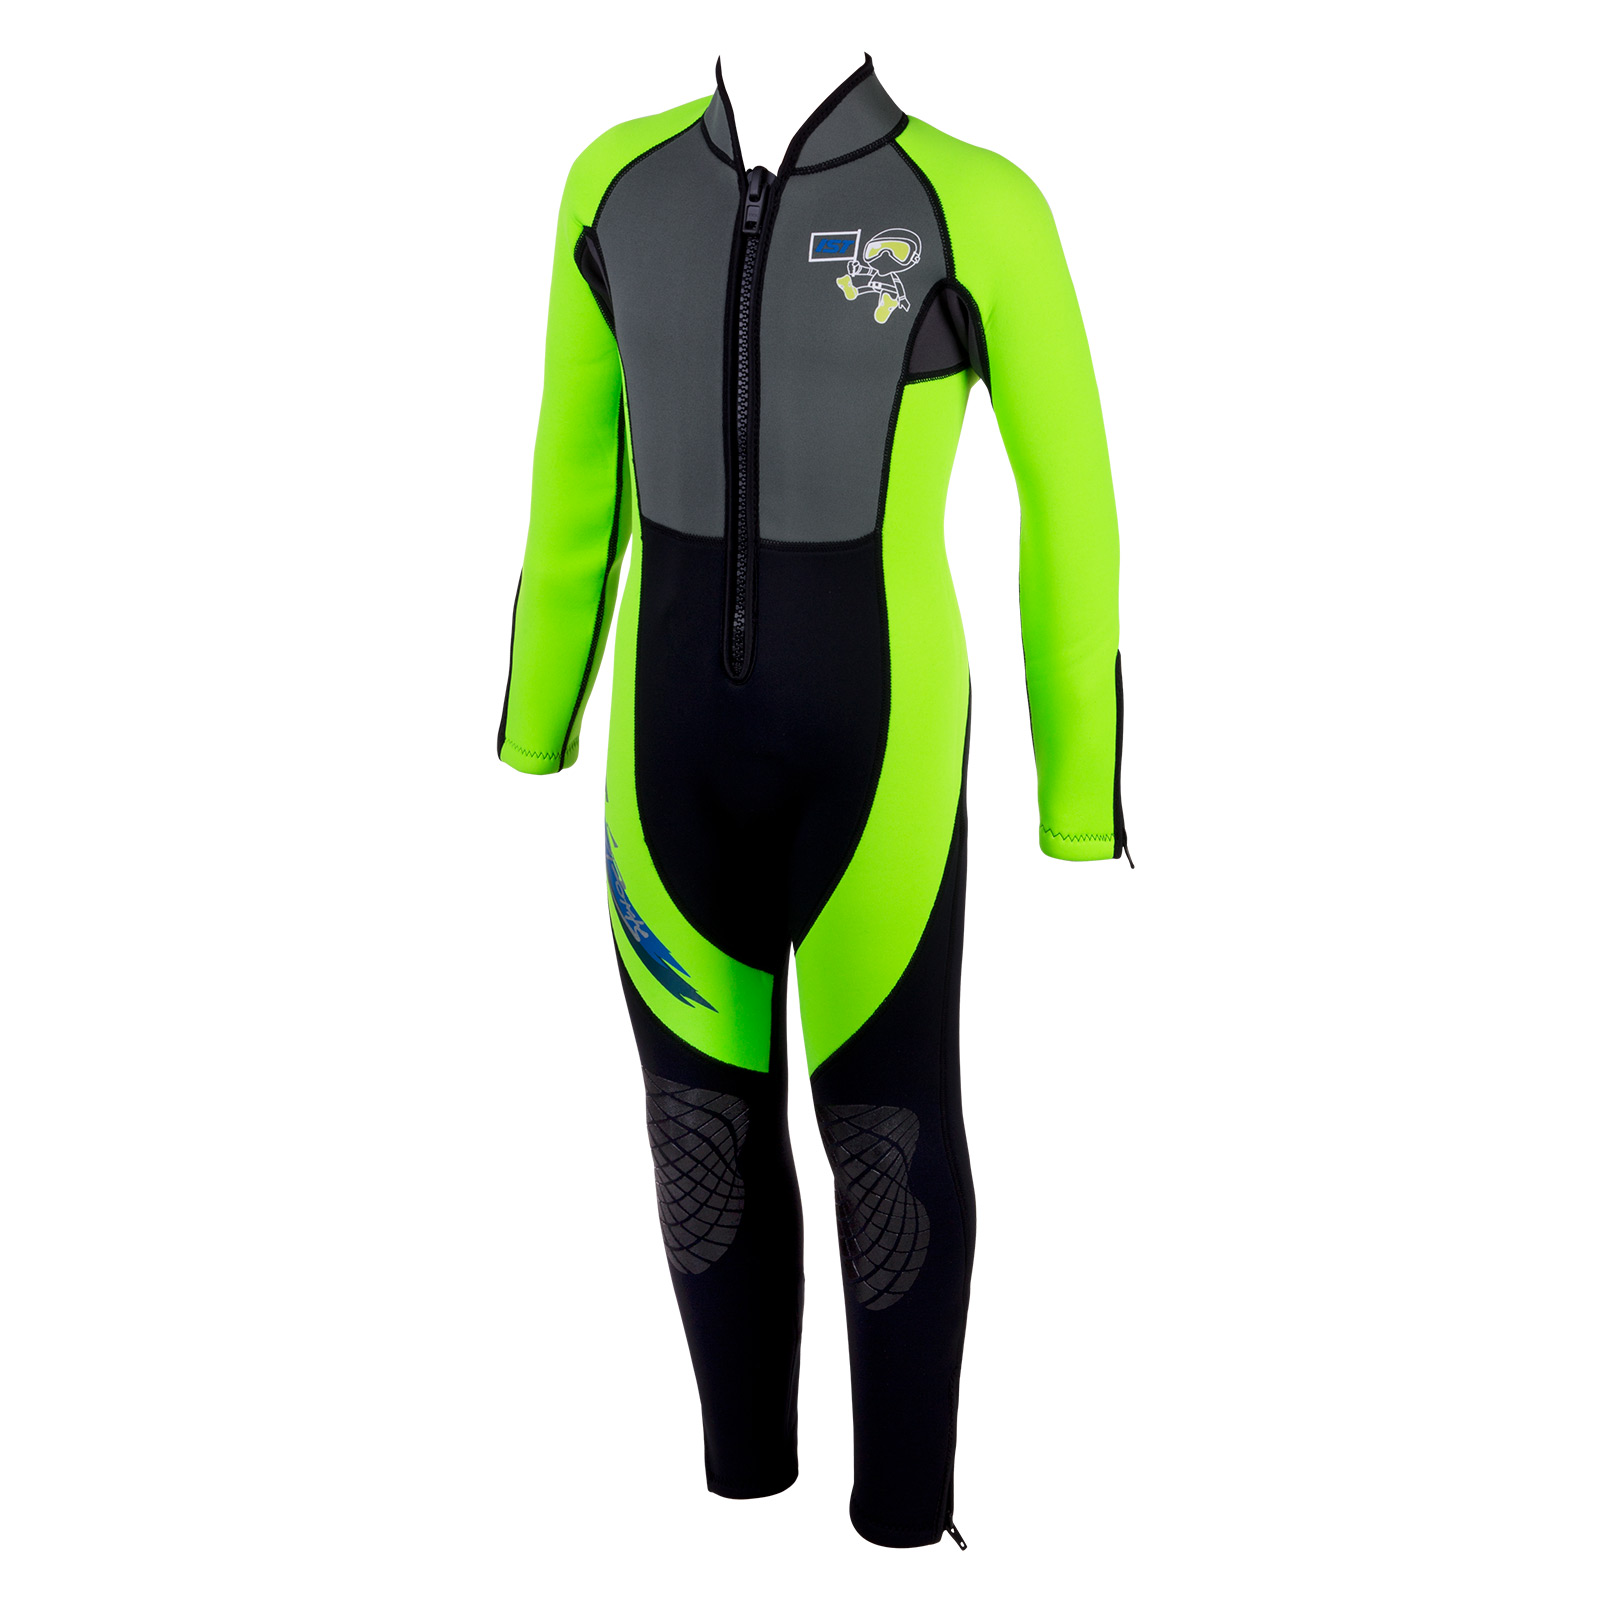 PURIGUARD 3MM KID'S JUMPSUIT WITH SUPER STRETCH PANELS